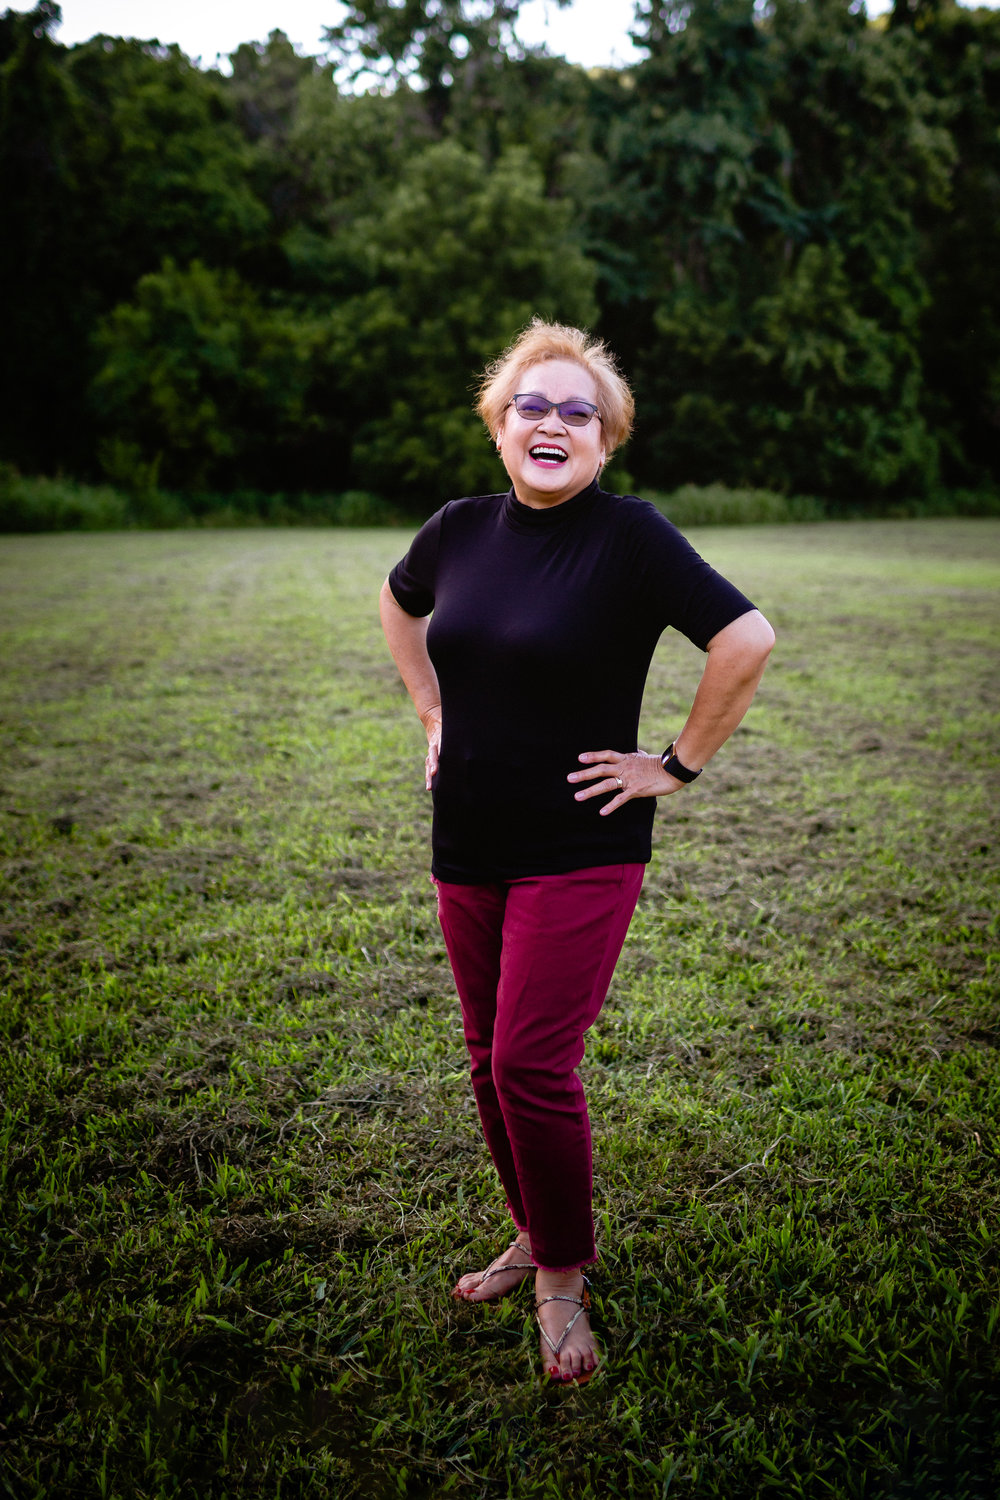 hot grandma lifestyle photographer waynesville missouri